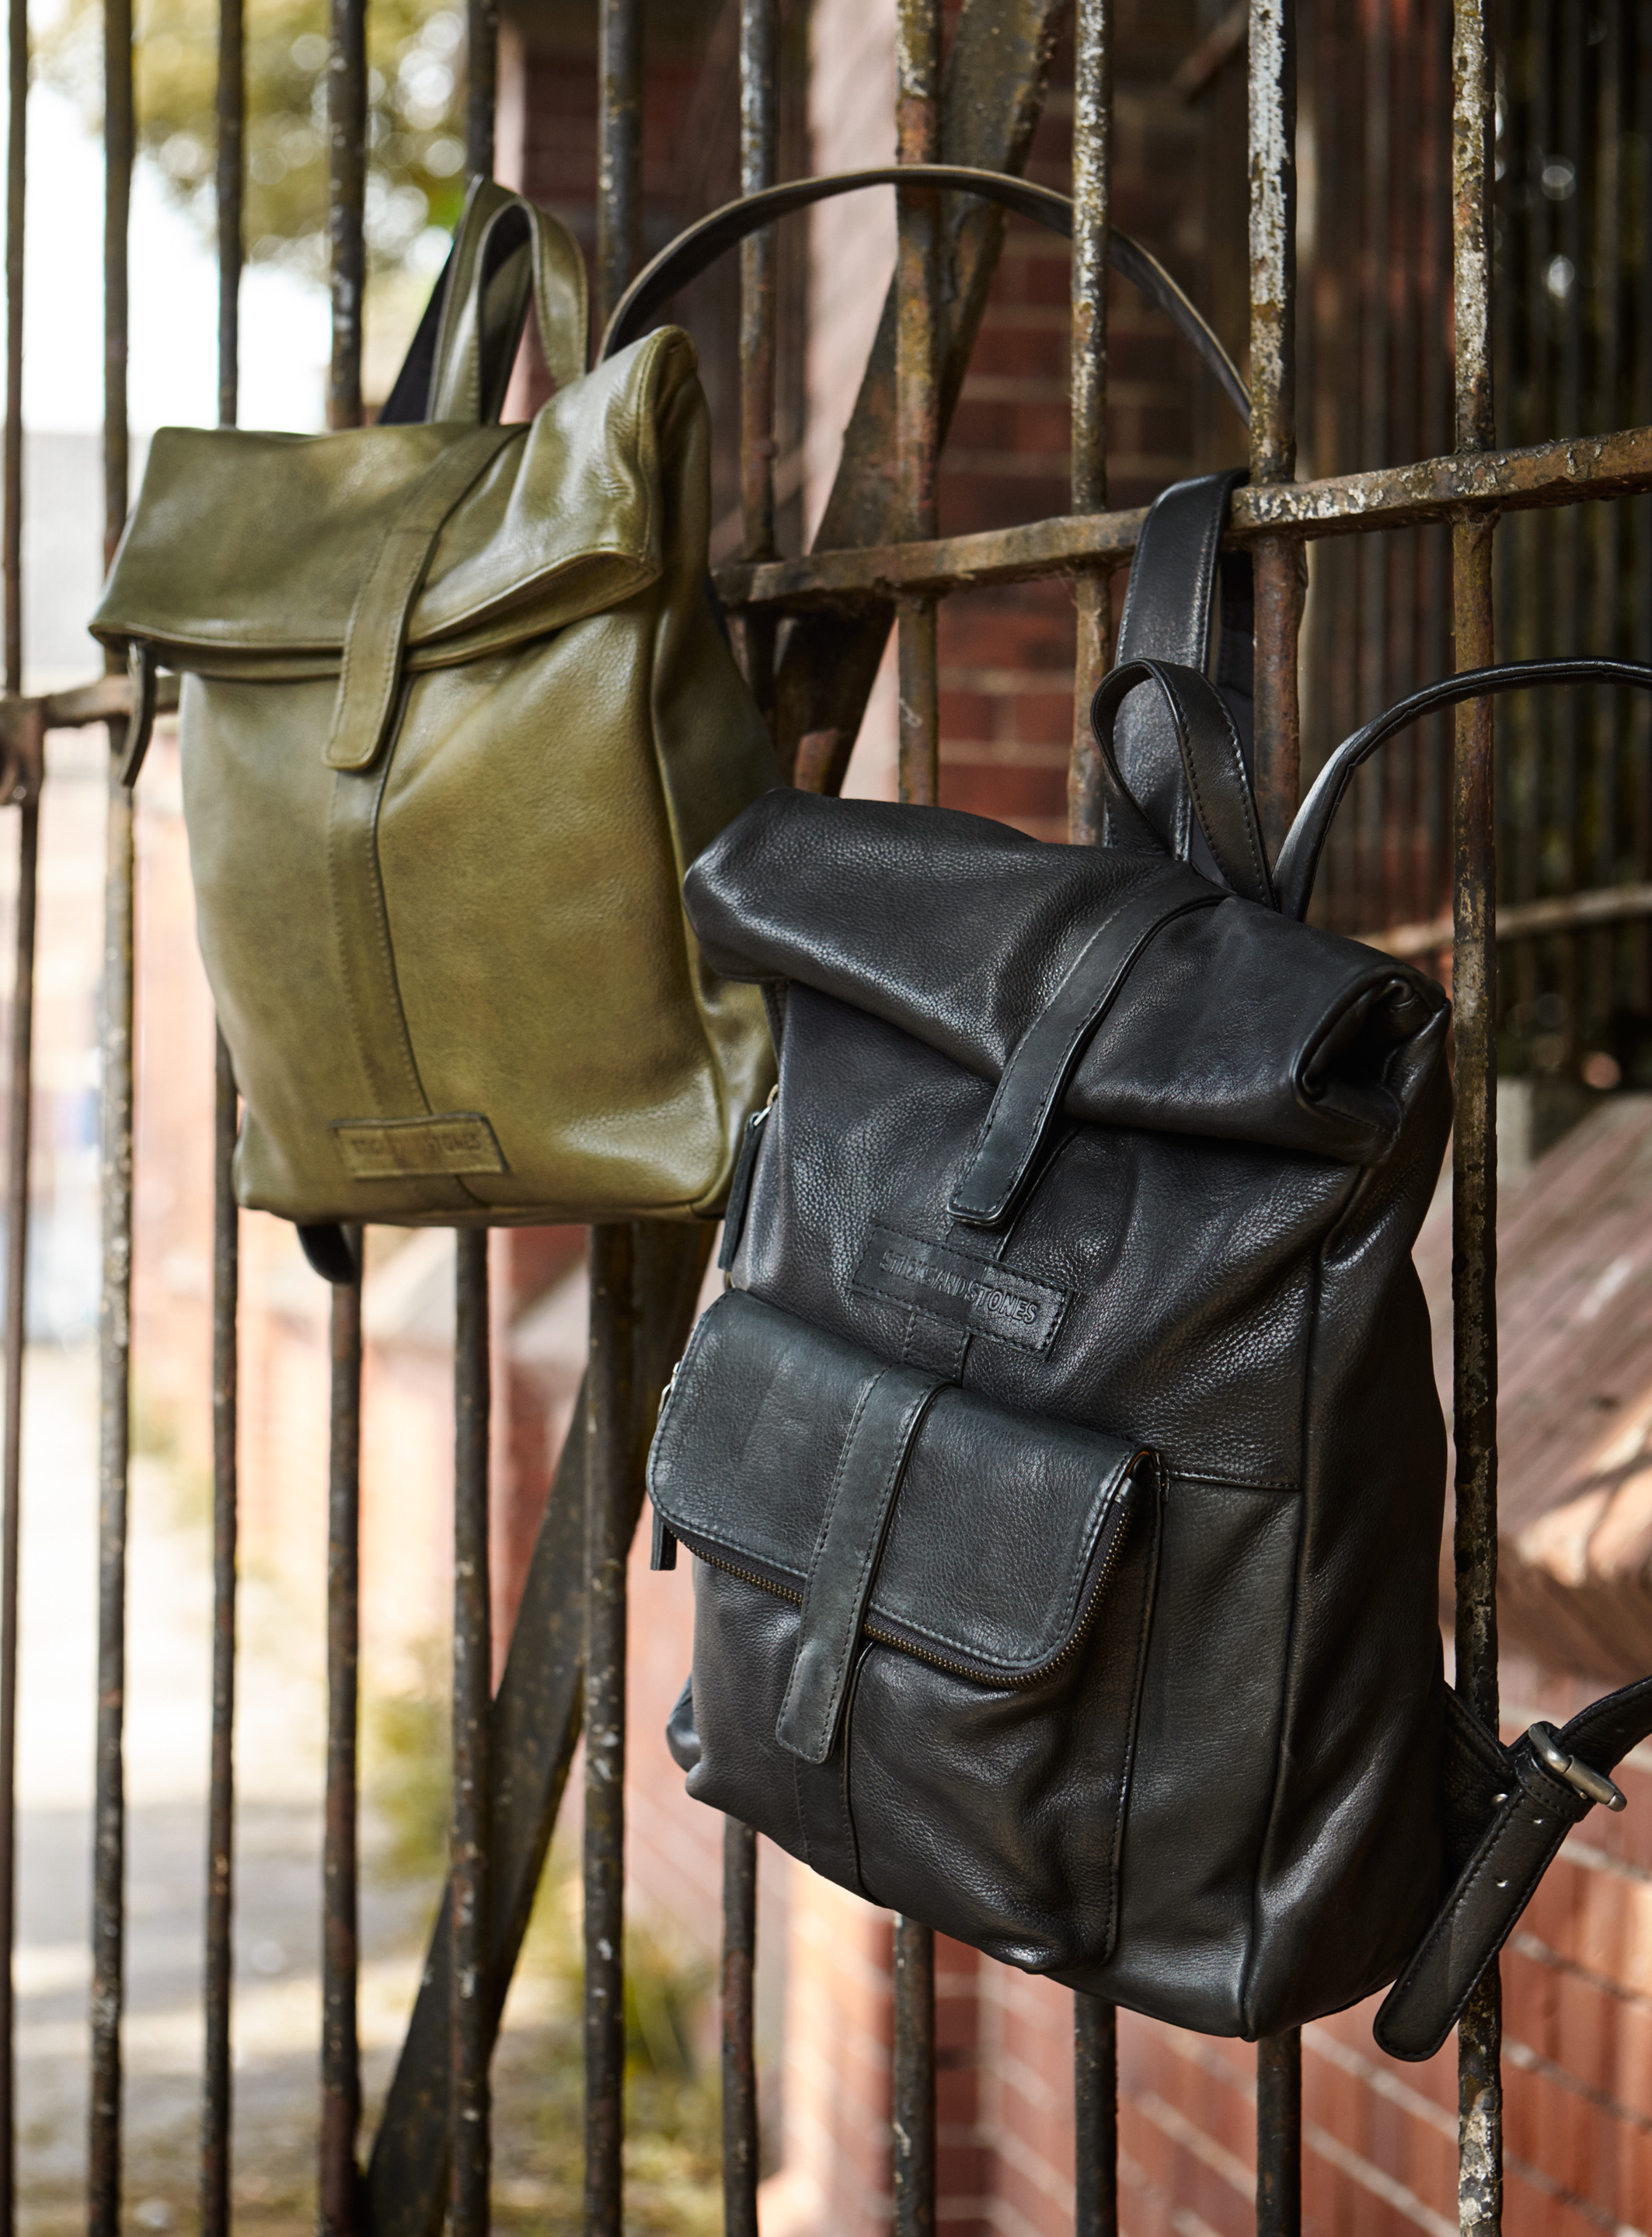 Courier Backpack and Messenger Backpack - Vegetable Tanned Eco-Leather